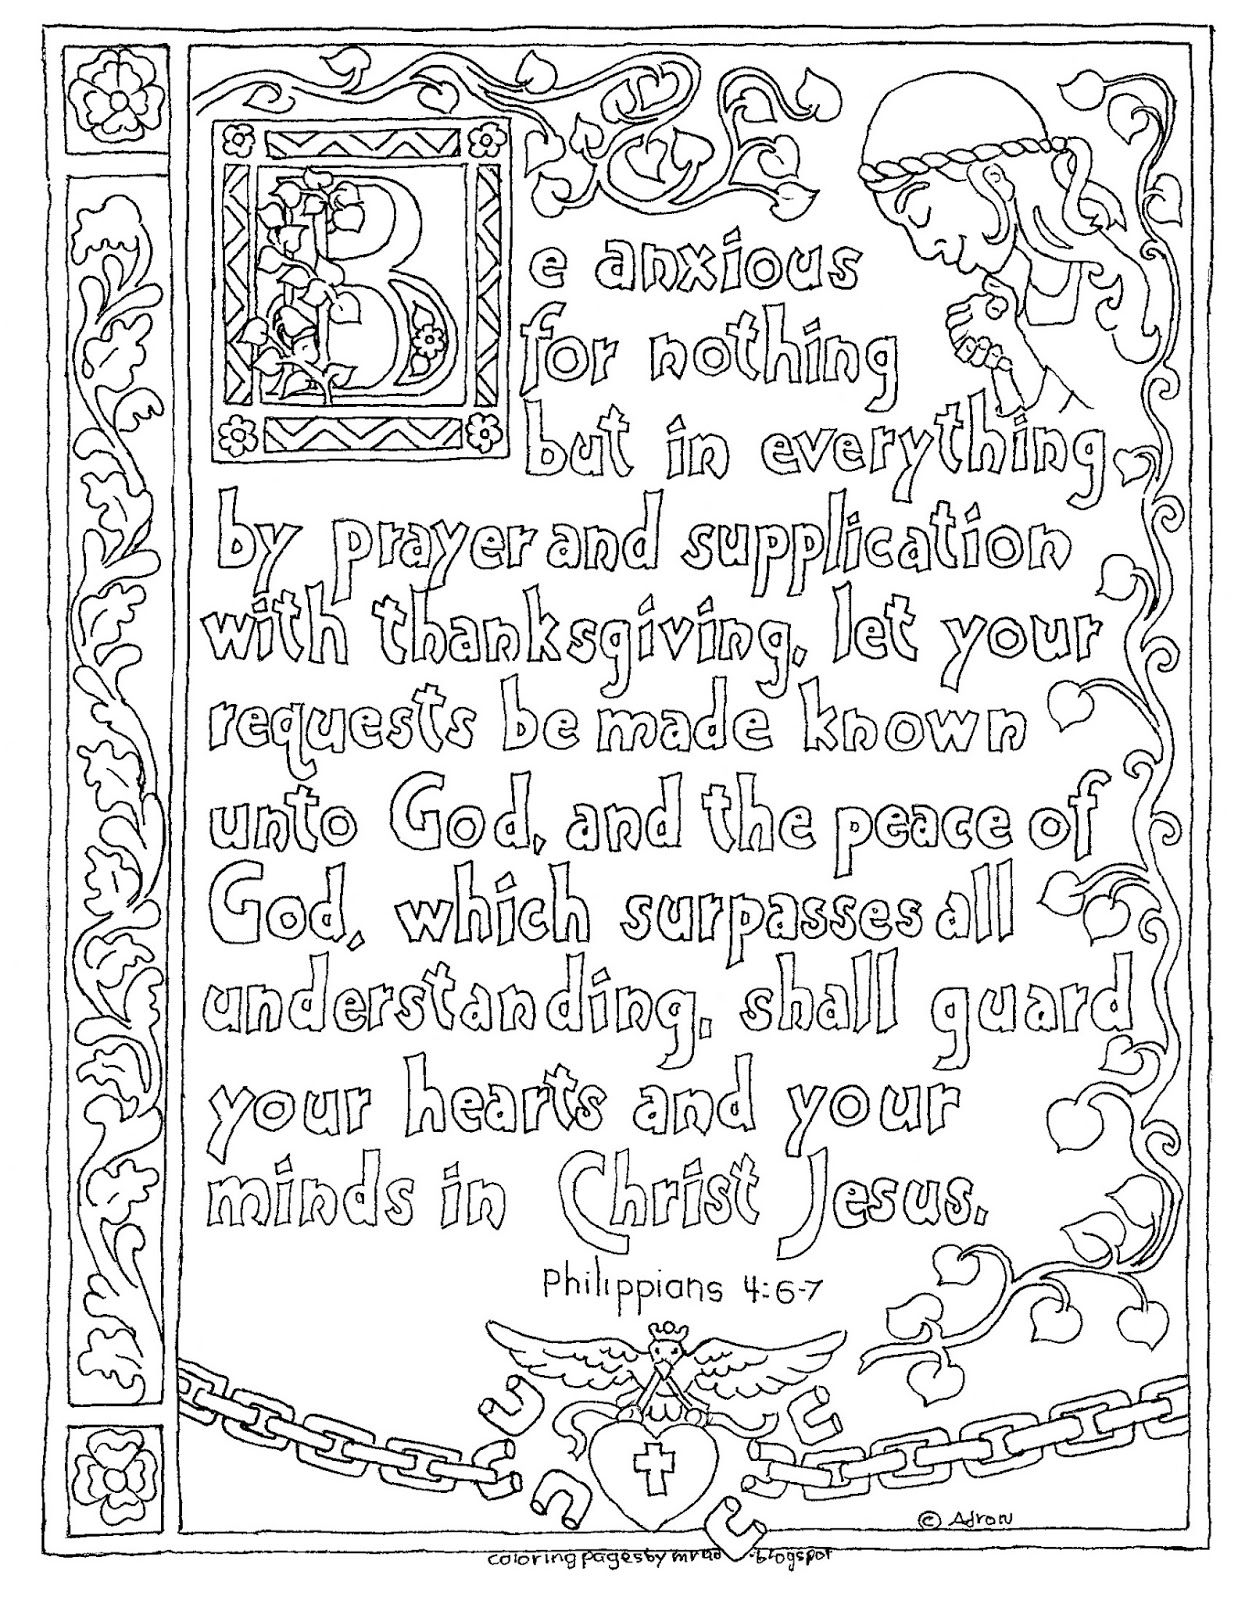 Coloring Pages For Kids By Mr Adron Printable Philippians 46 7 Illuminated Text Style Page